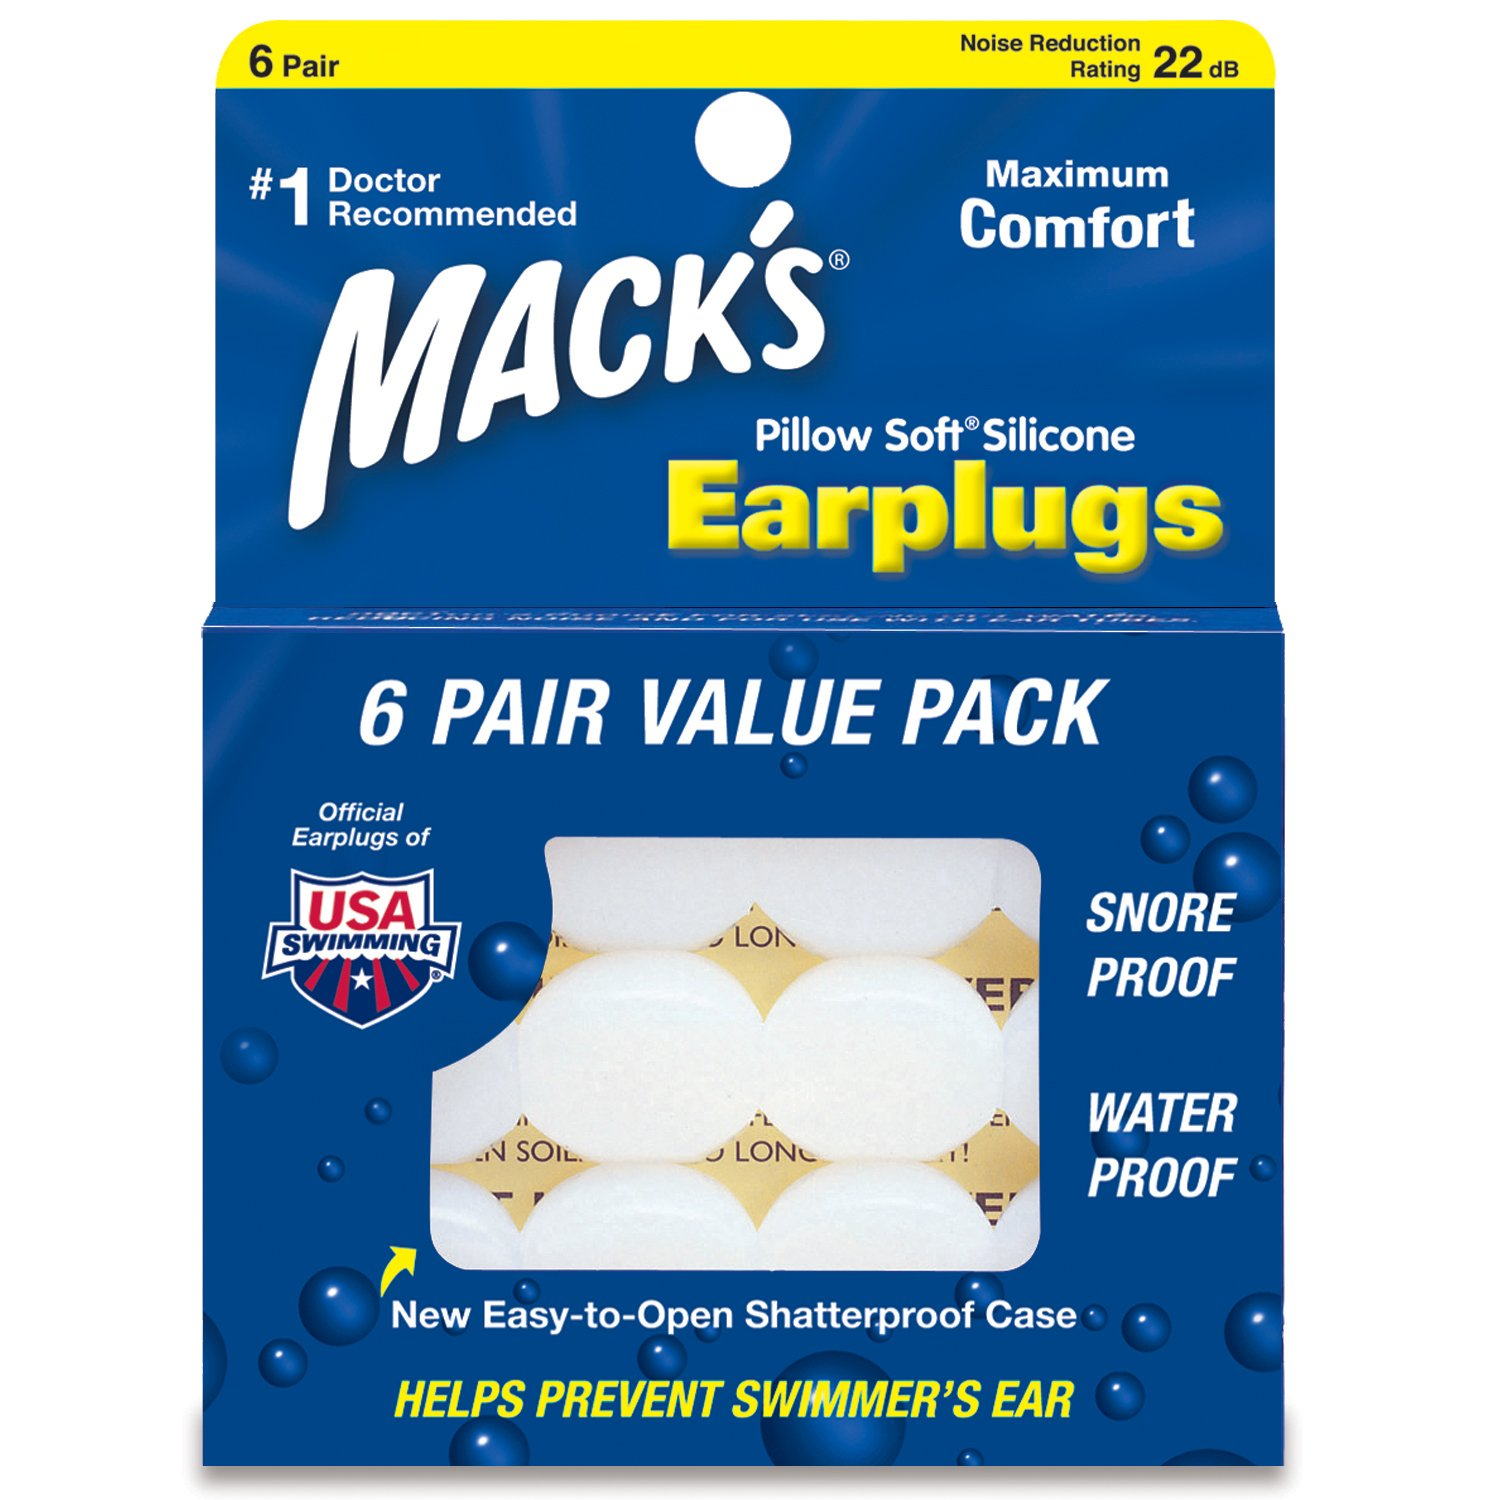 Mack's Pillow Soft Silicone Earplugs Value Pack, 6